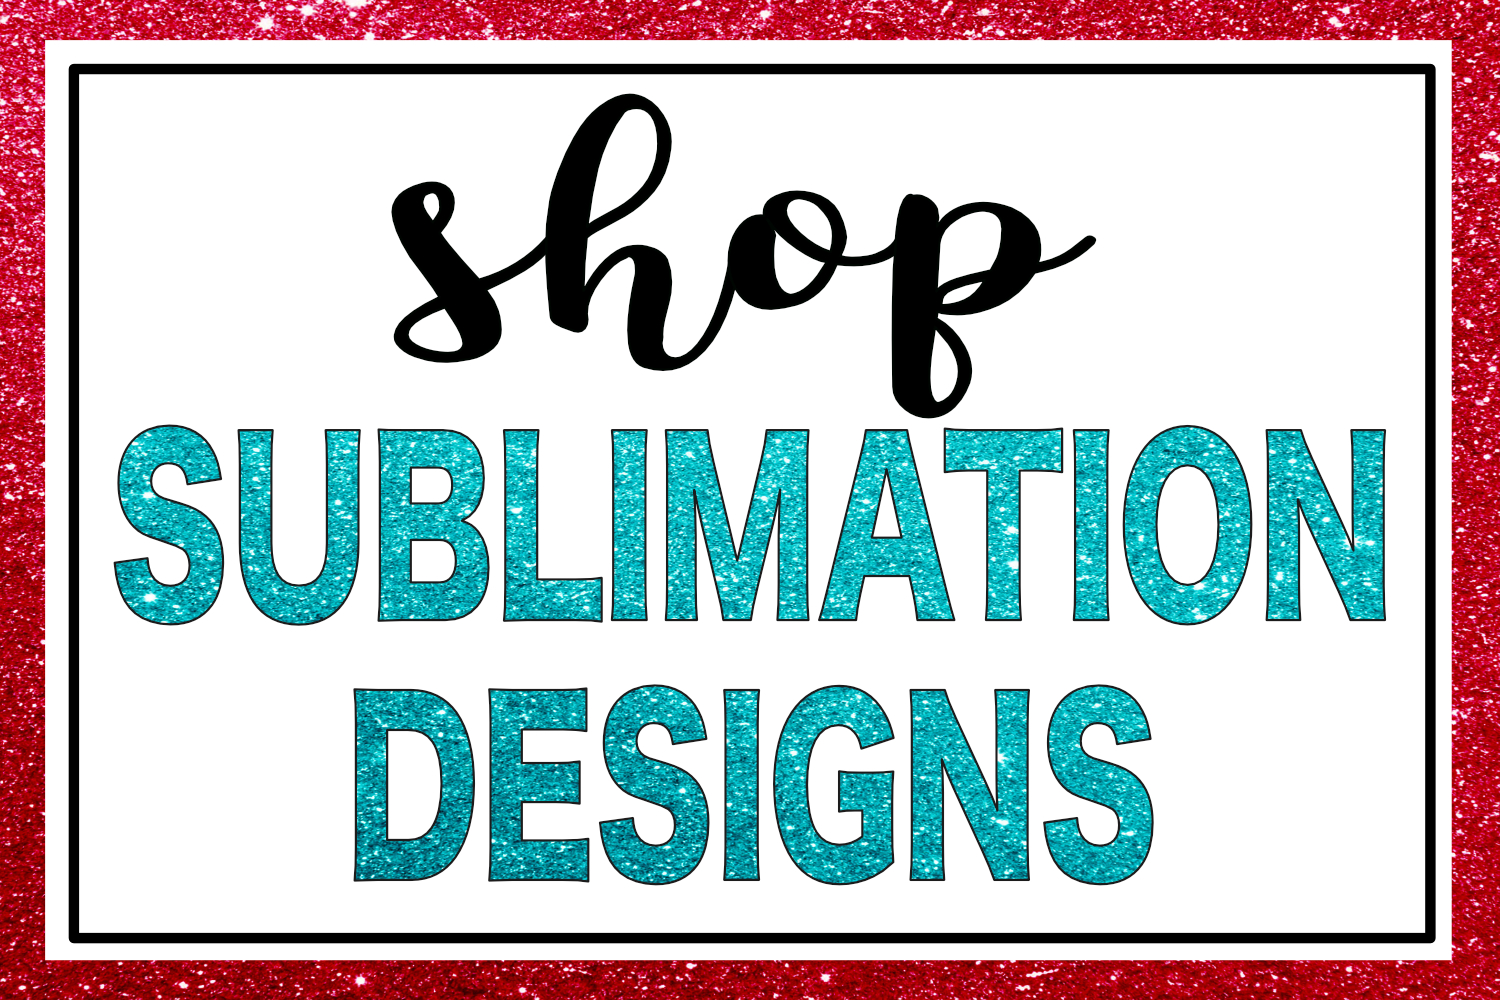 SVG Stop Sublimation Designs printable clipart